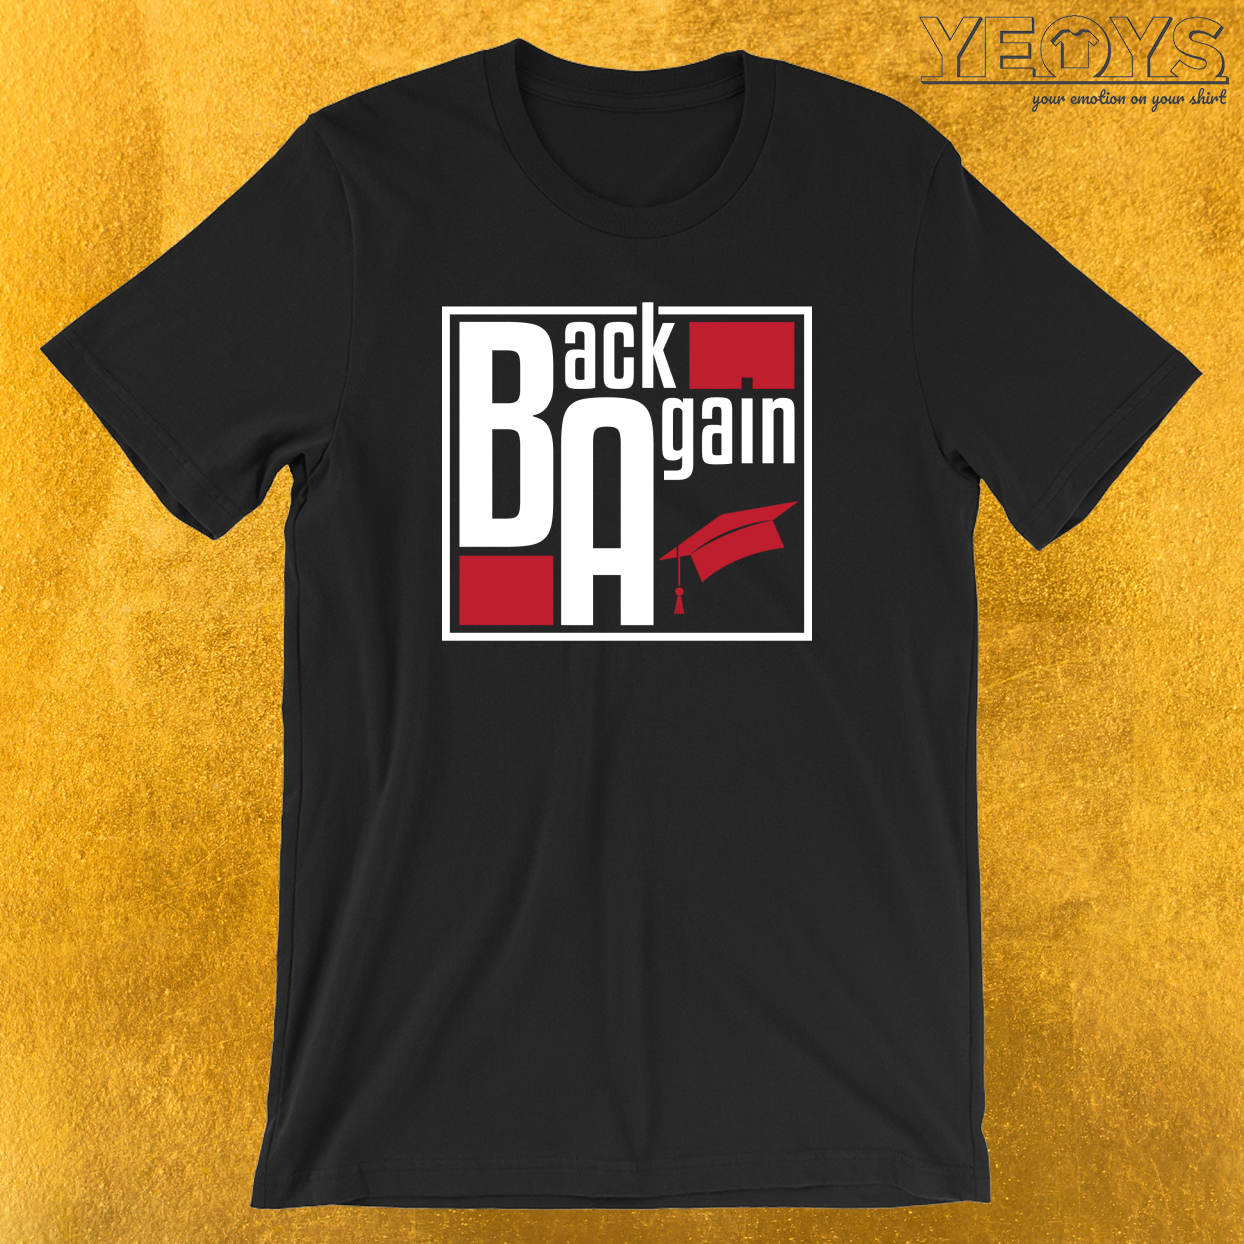 Back Again T-Shirt